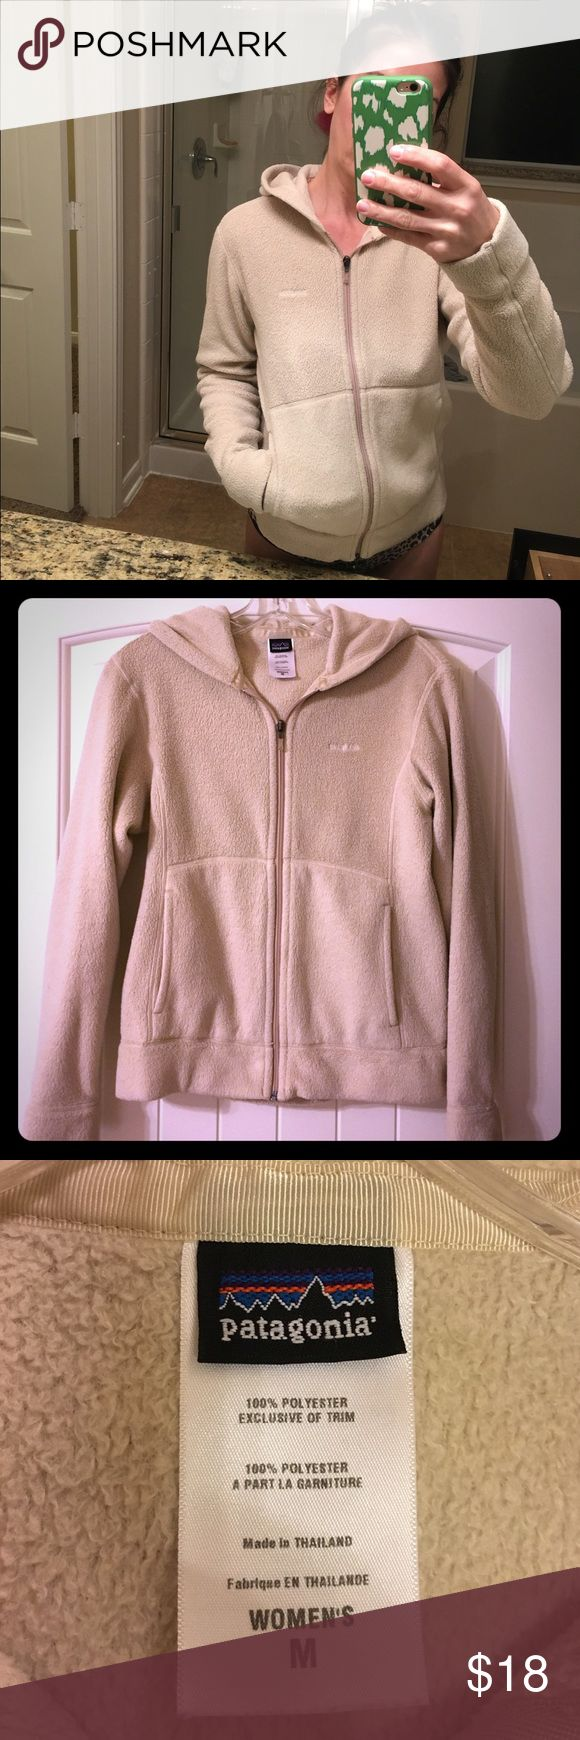 Patagonia hoodie Cute oatmeal colored fleece Patagonia jacket. Good used condition. Patagonia Jackets & Coats